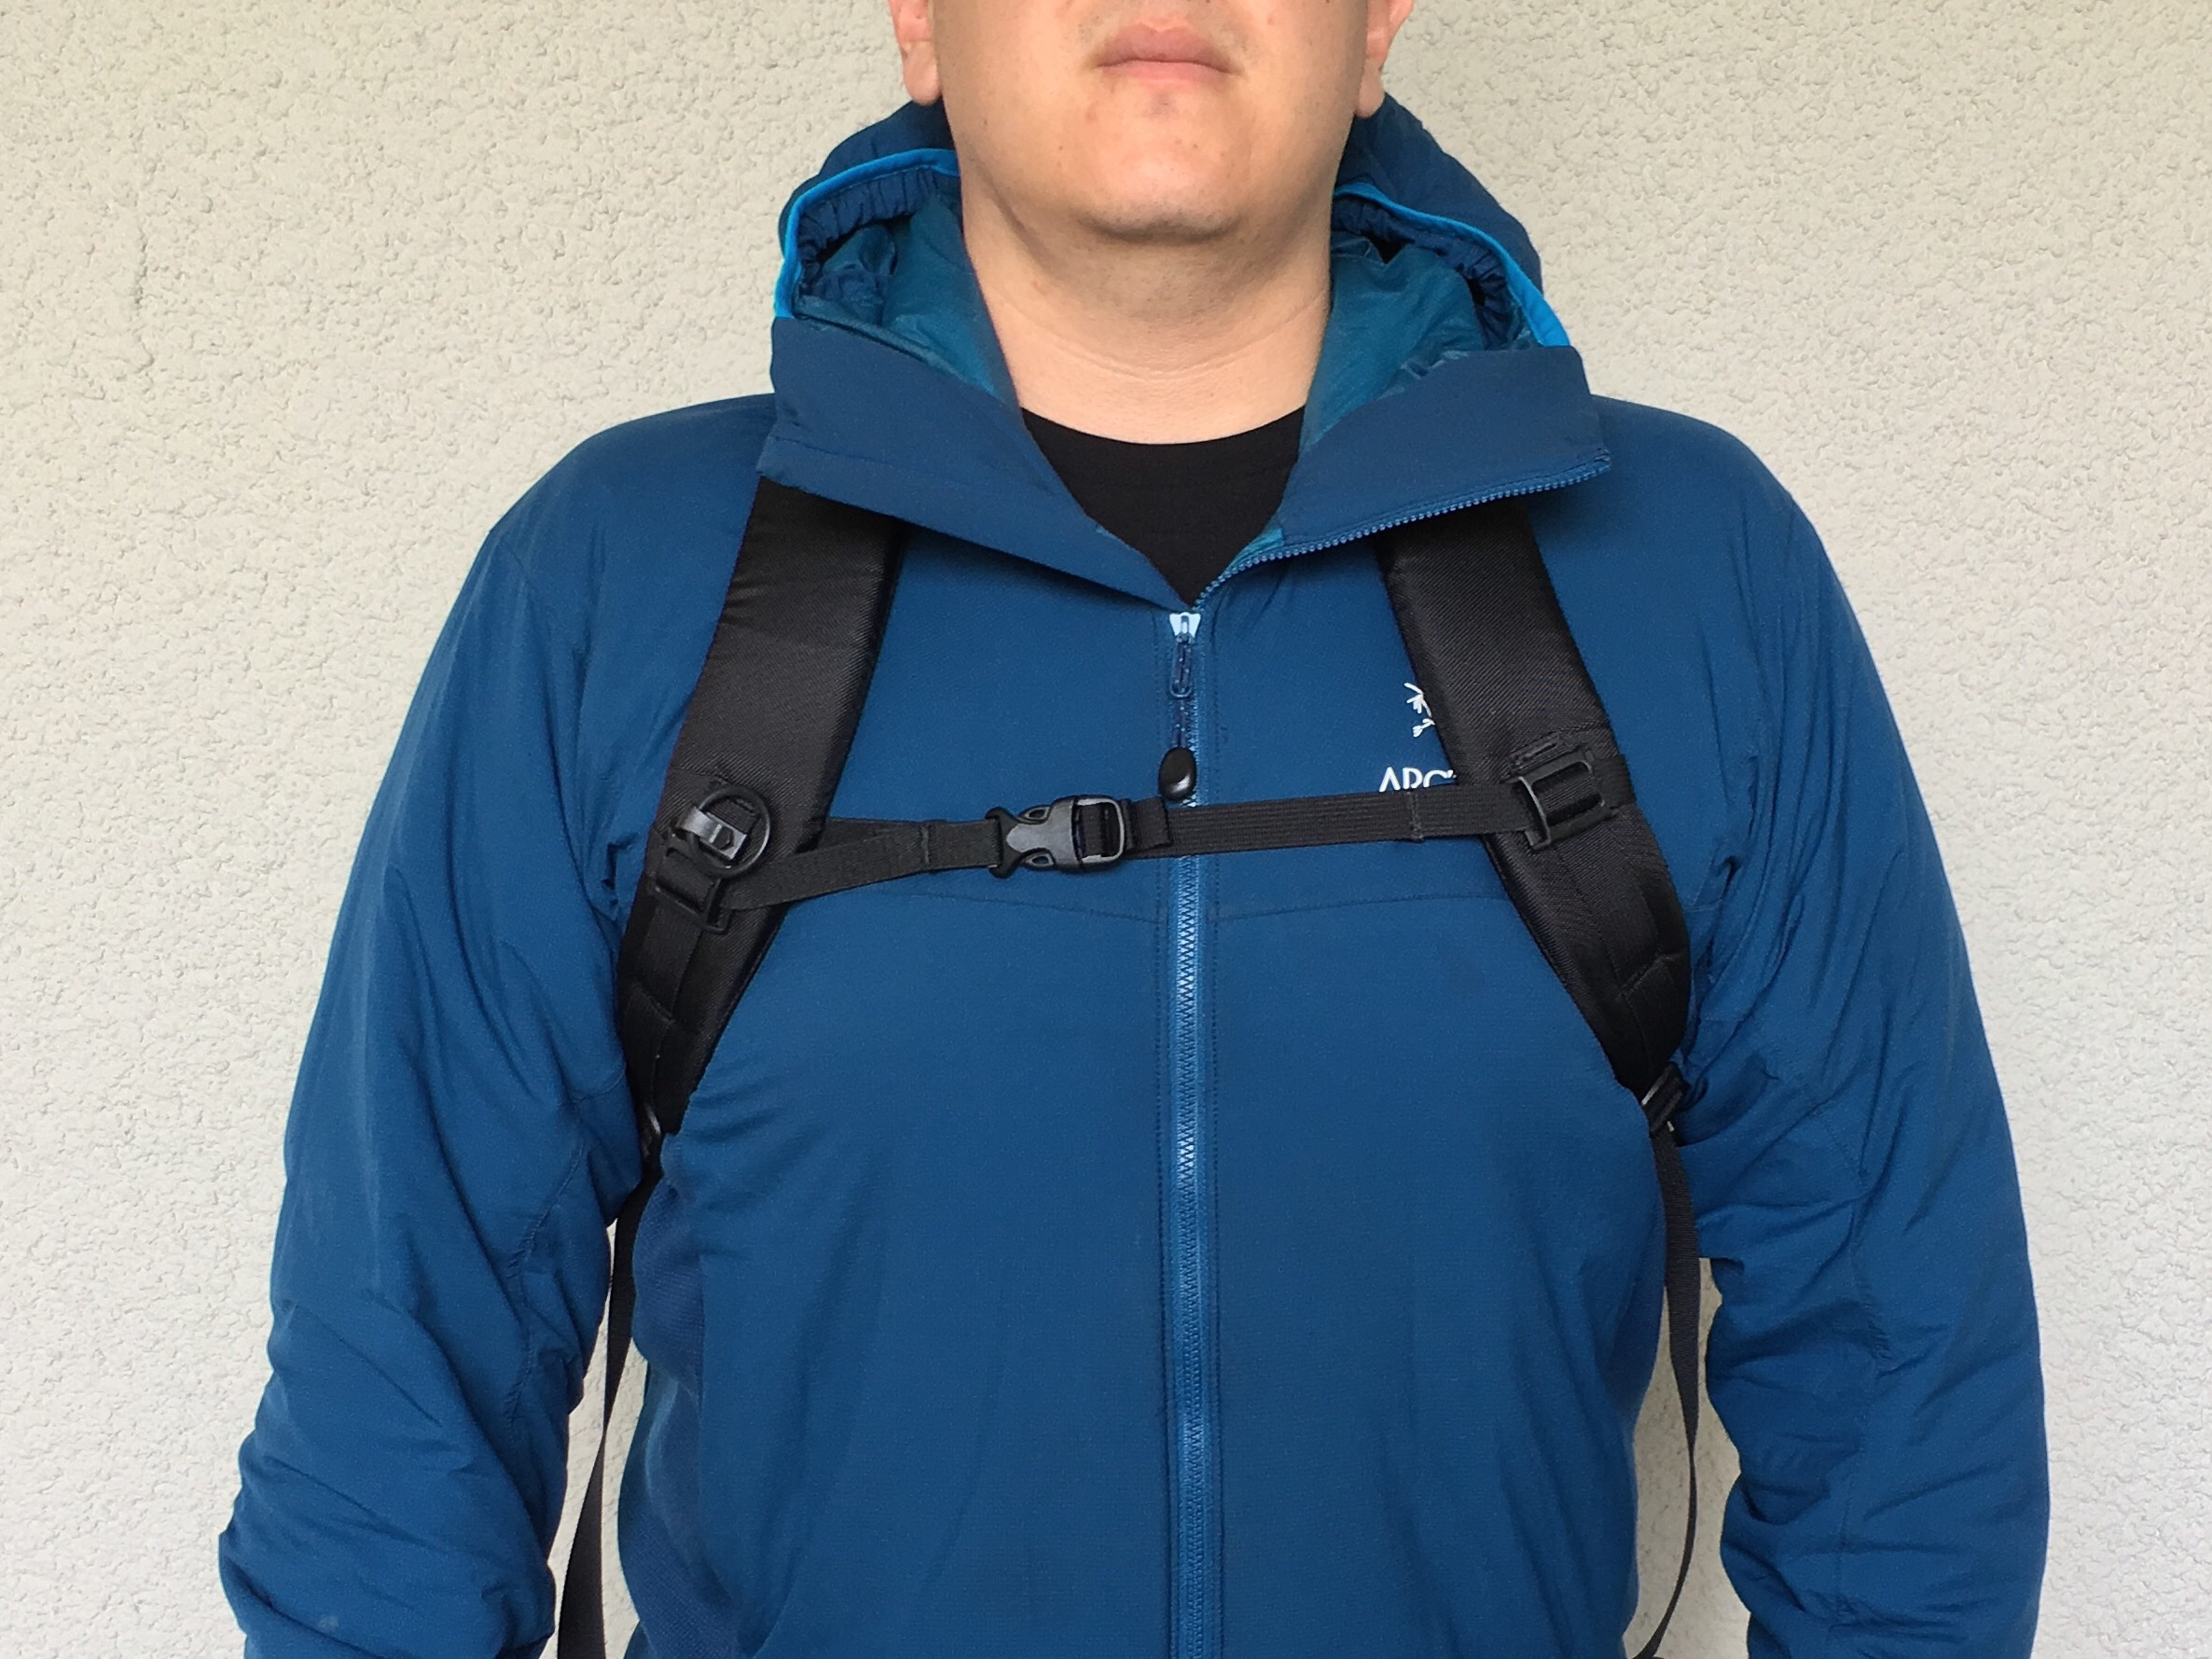 Arcteryx Mantis 26 review on body image shoulder straps with sternum chest strap